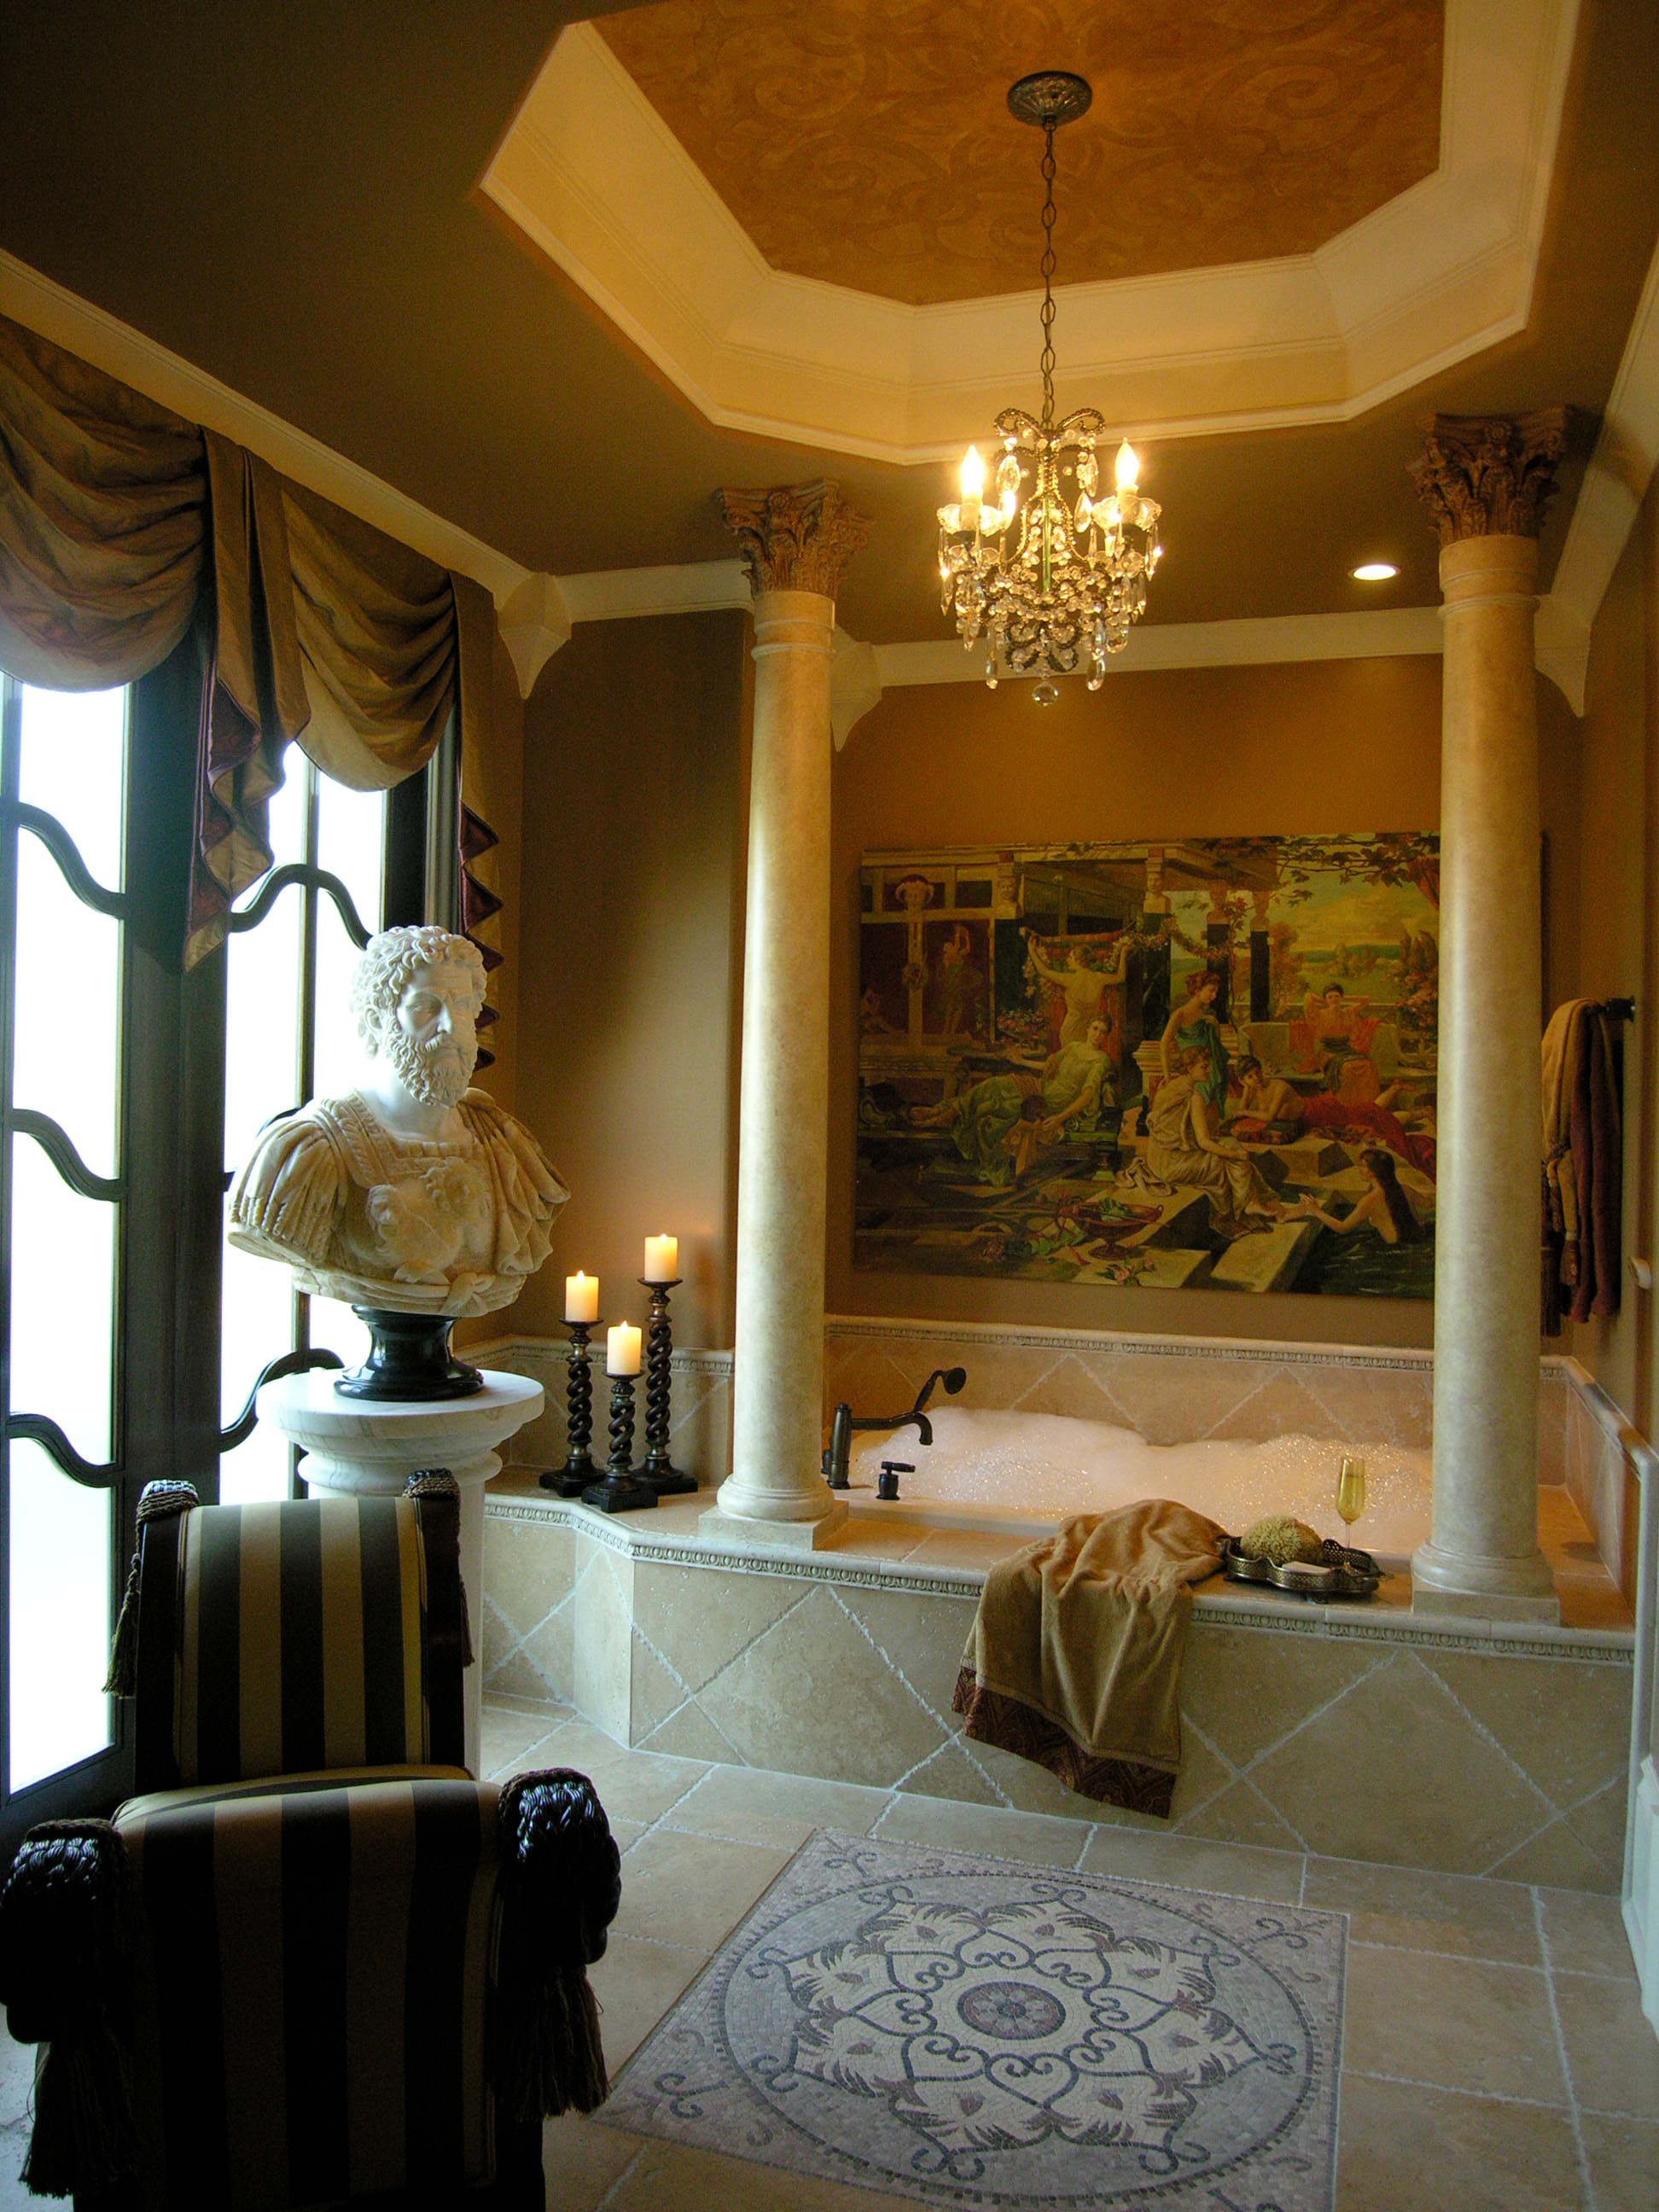 Howard Wiggins Interior Design Coupons Near Me In Brentwood 8coupons